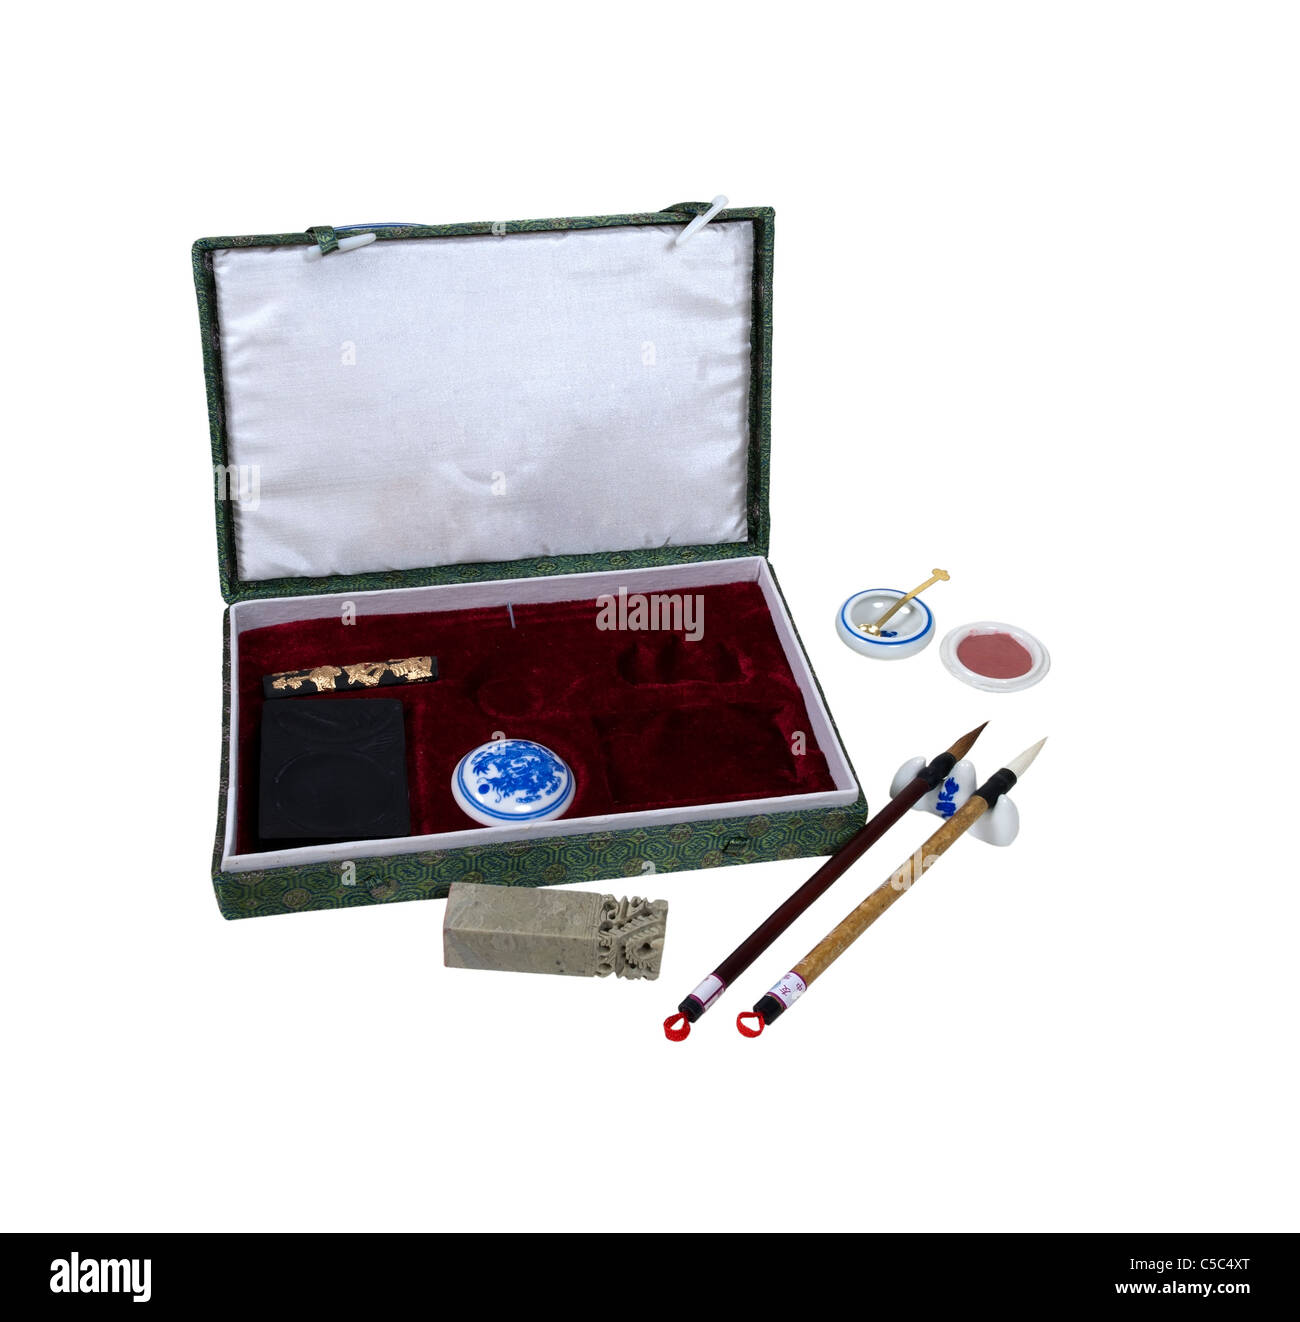 Asian calligraphy set with a variety of tools to make flourished embellishments and letters - path included - Stock Image